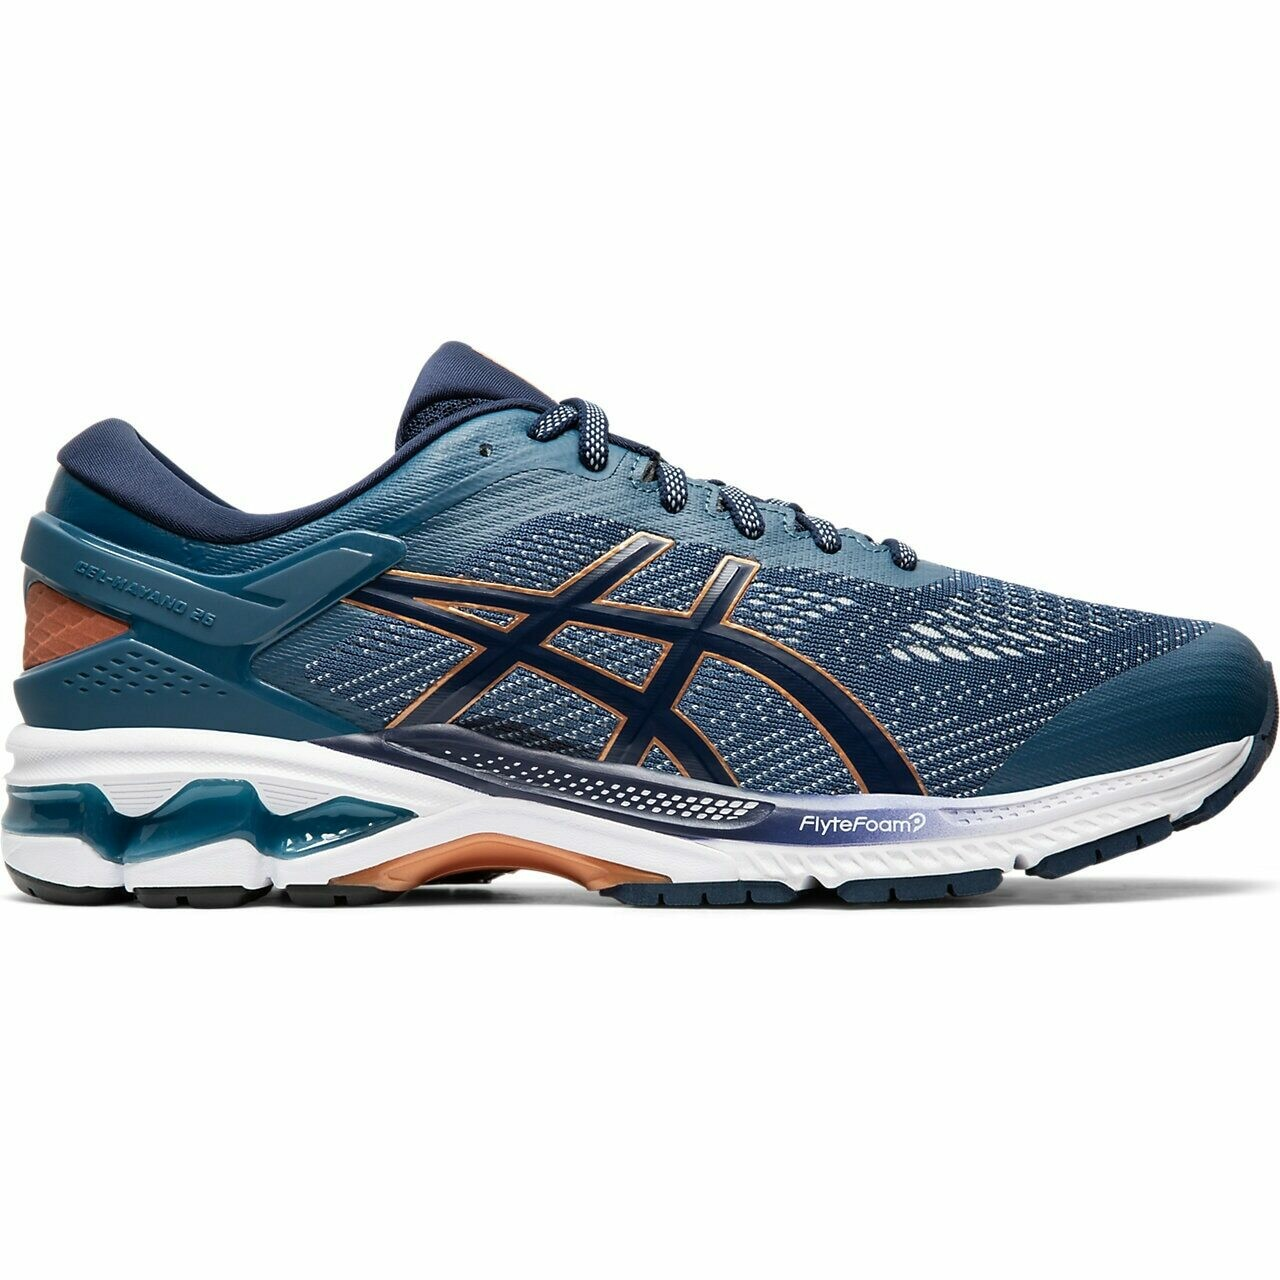 Asics Kayano 26 - Support